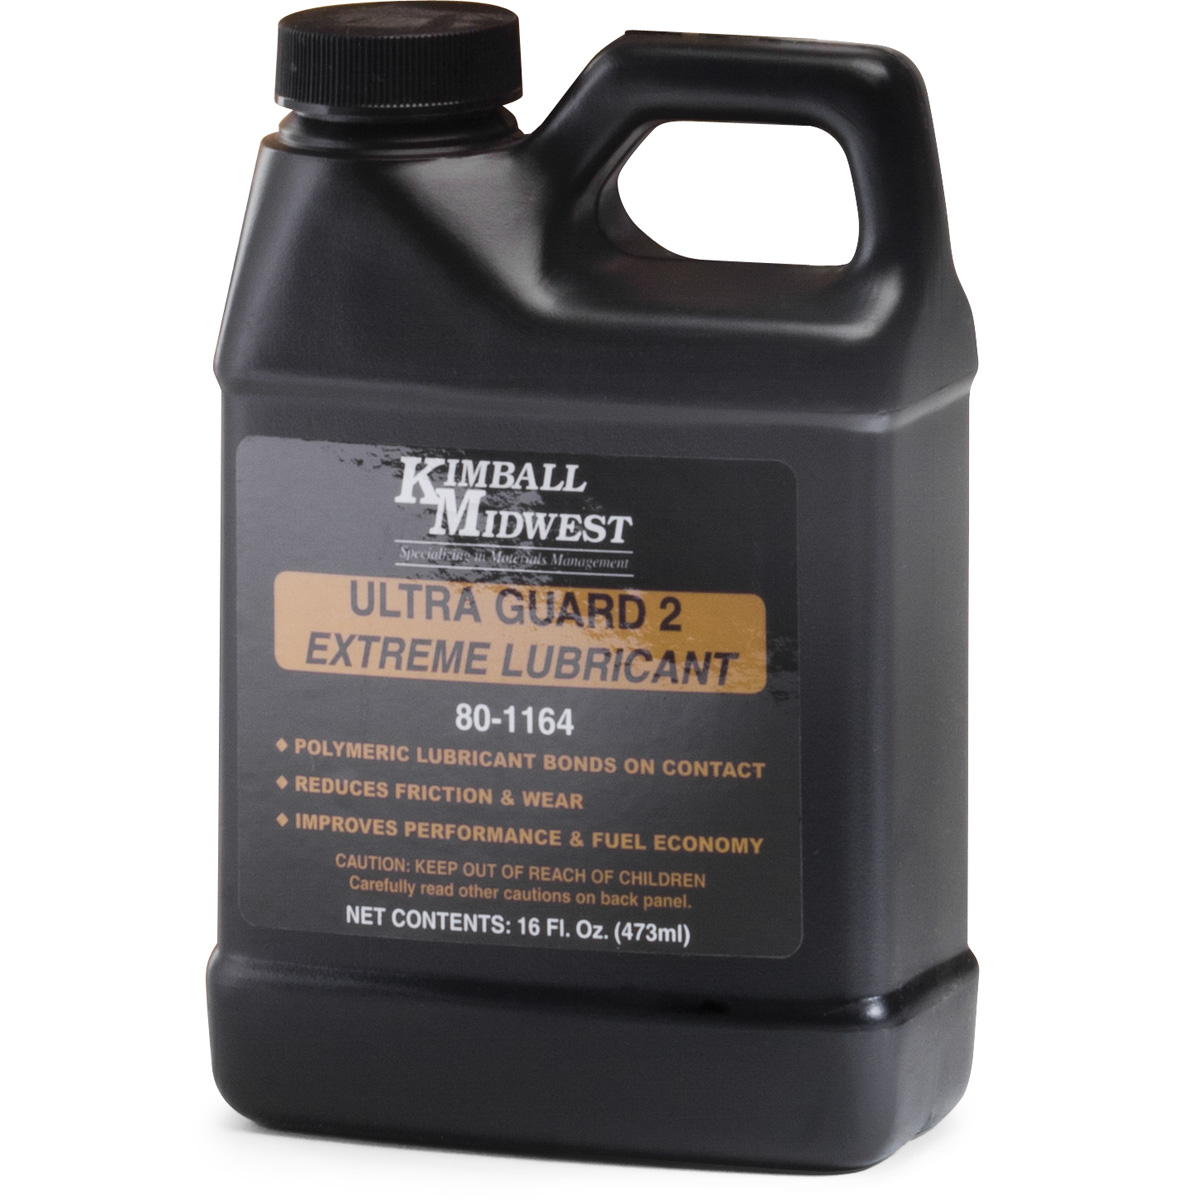 Ultra Guard 2 Extreme Lubricant - Kimball Midwest